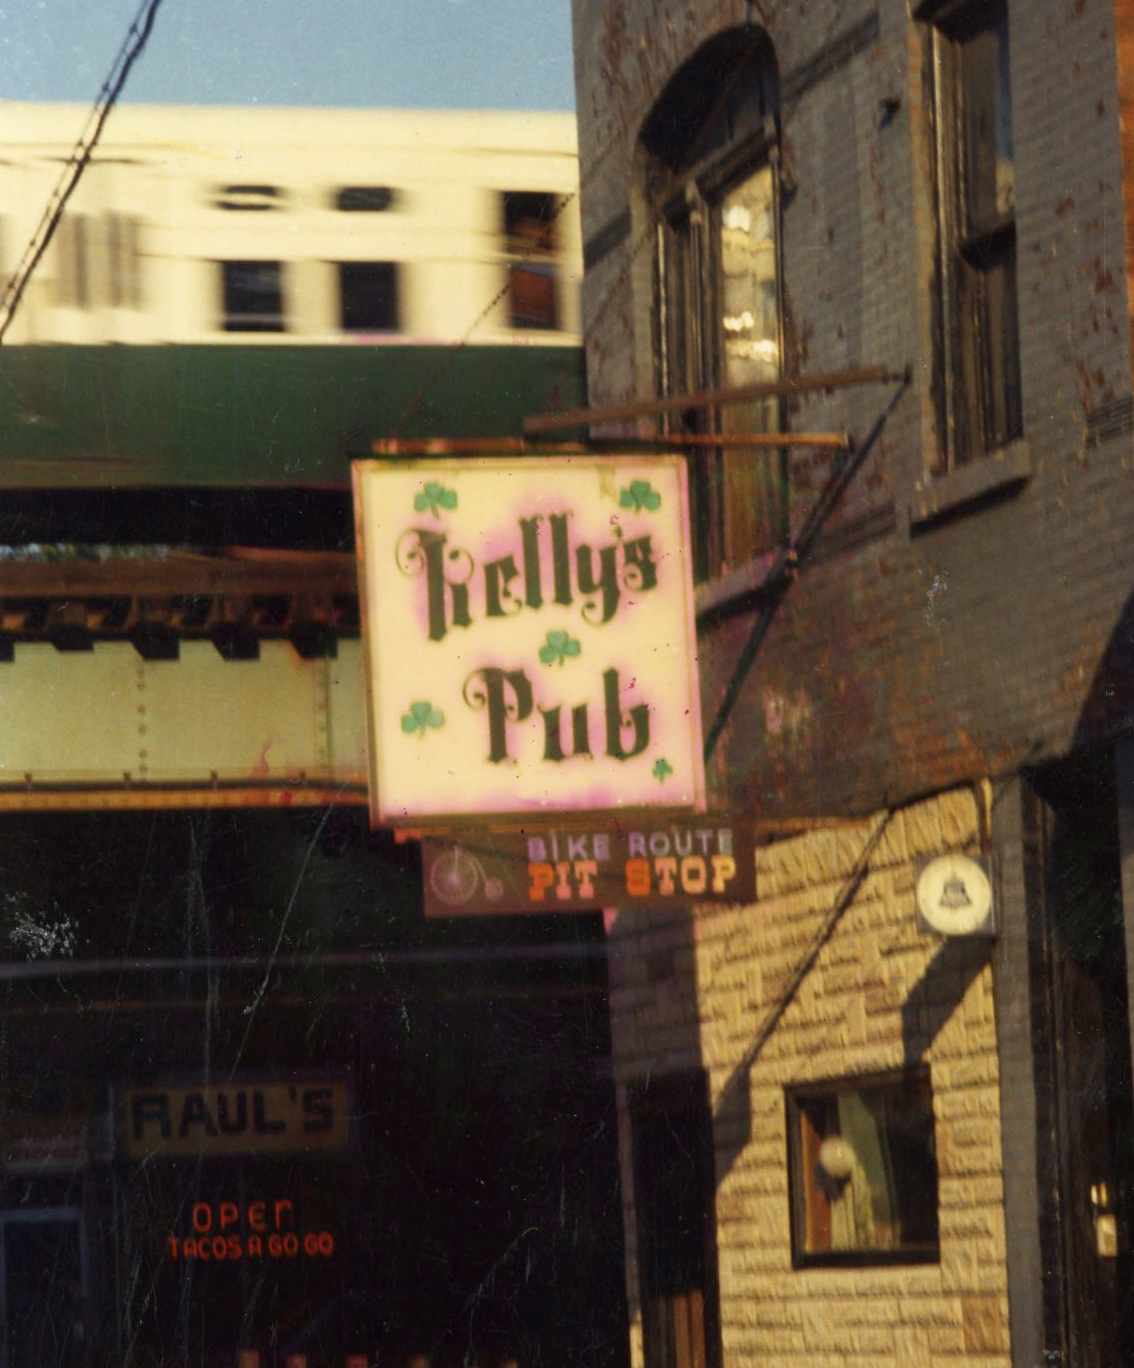 Kelly's Pub in the 1970s